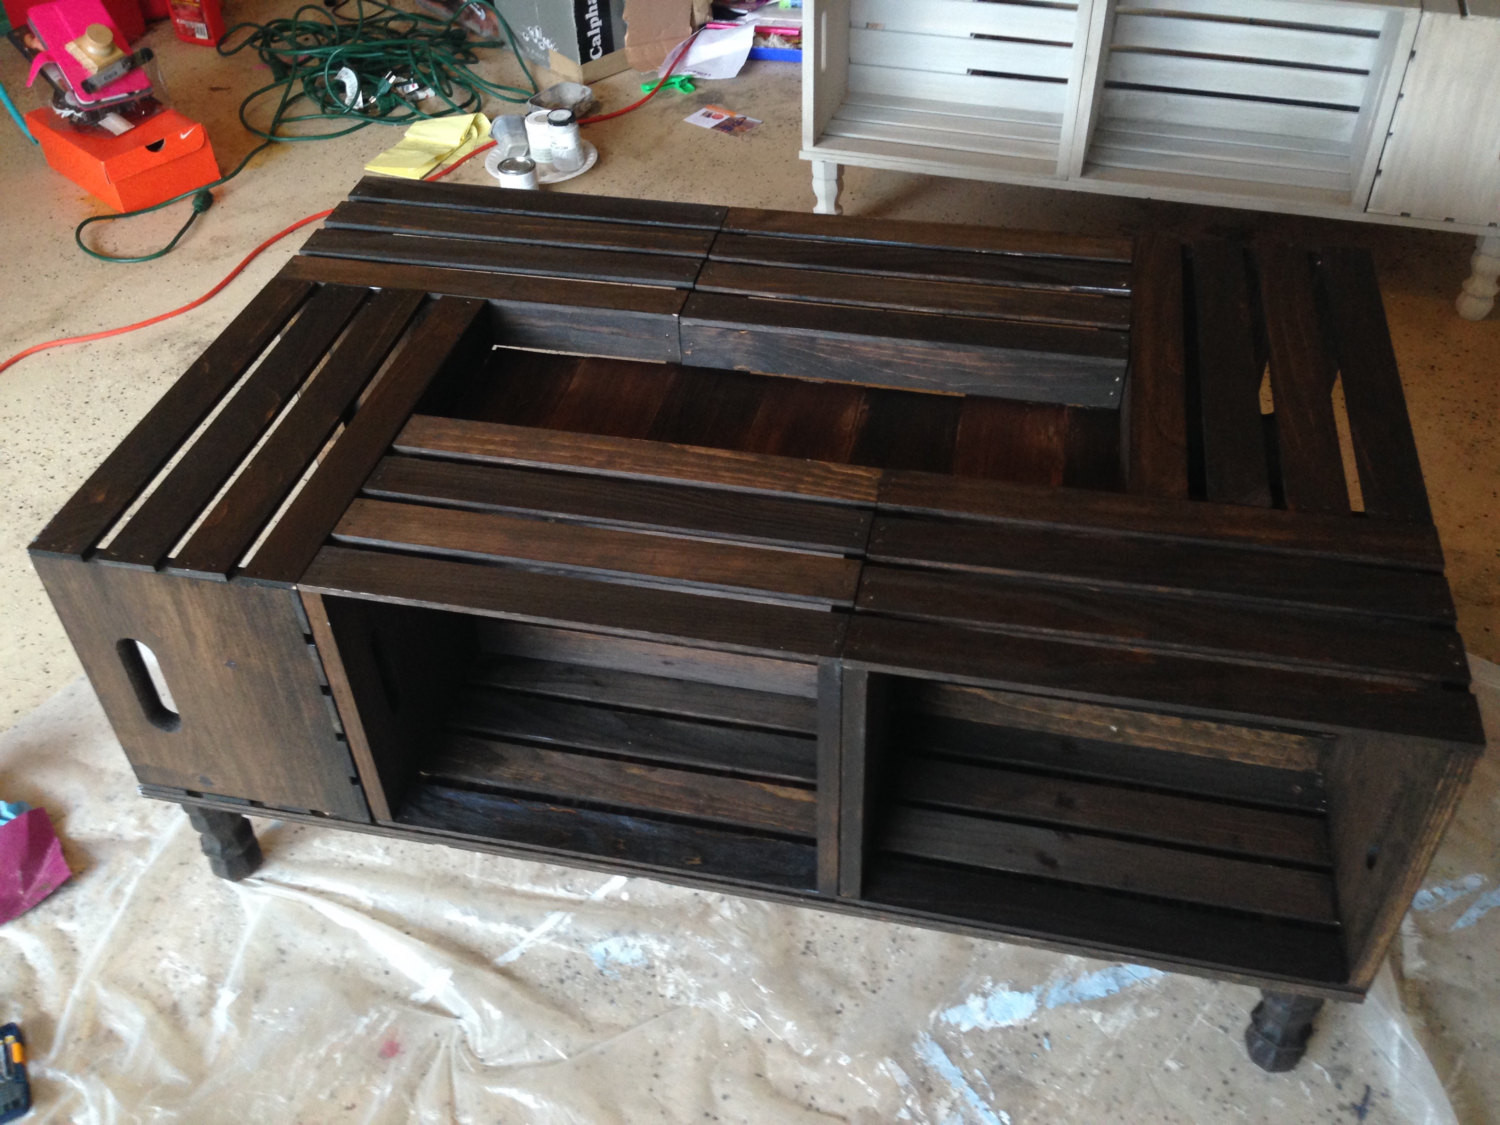 Best ideas about Wood Crate Coffee Table . Save or Pin Wood Stained Wine Crate Coffee Table by NotTooShabbyHome Now.